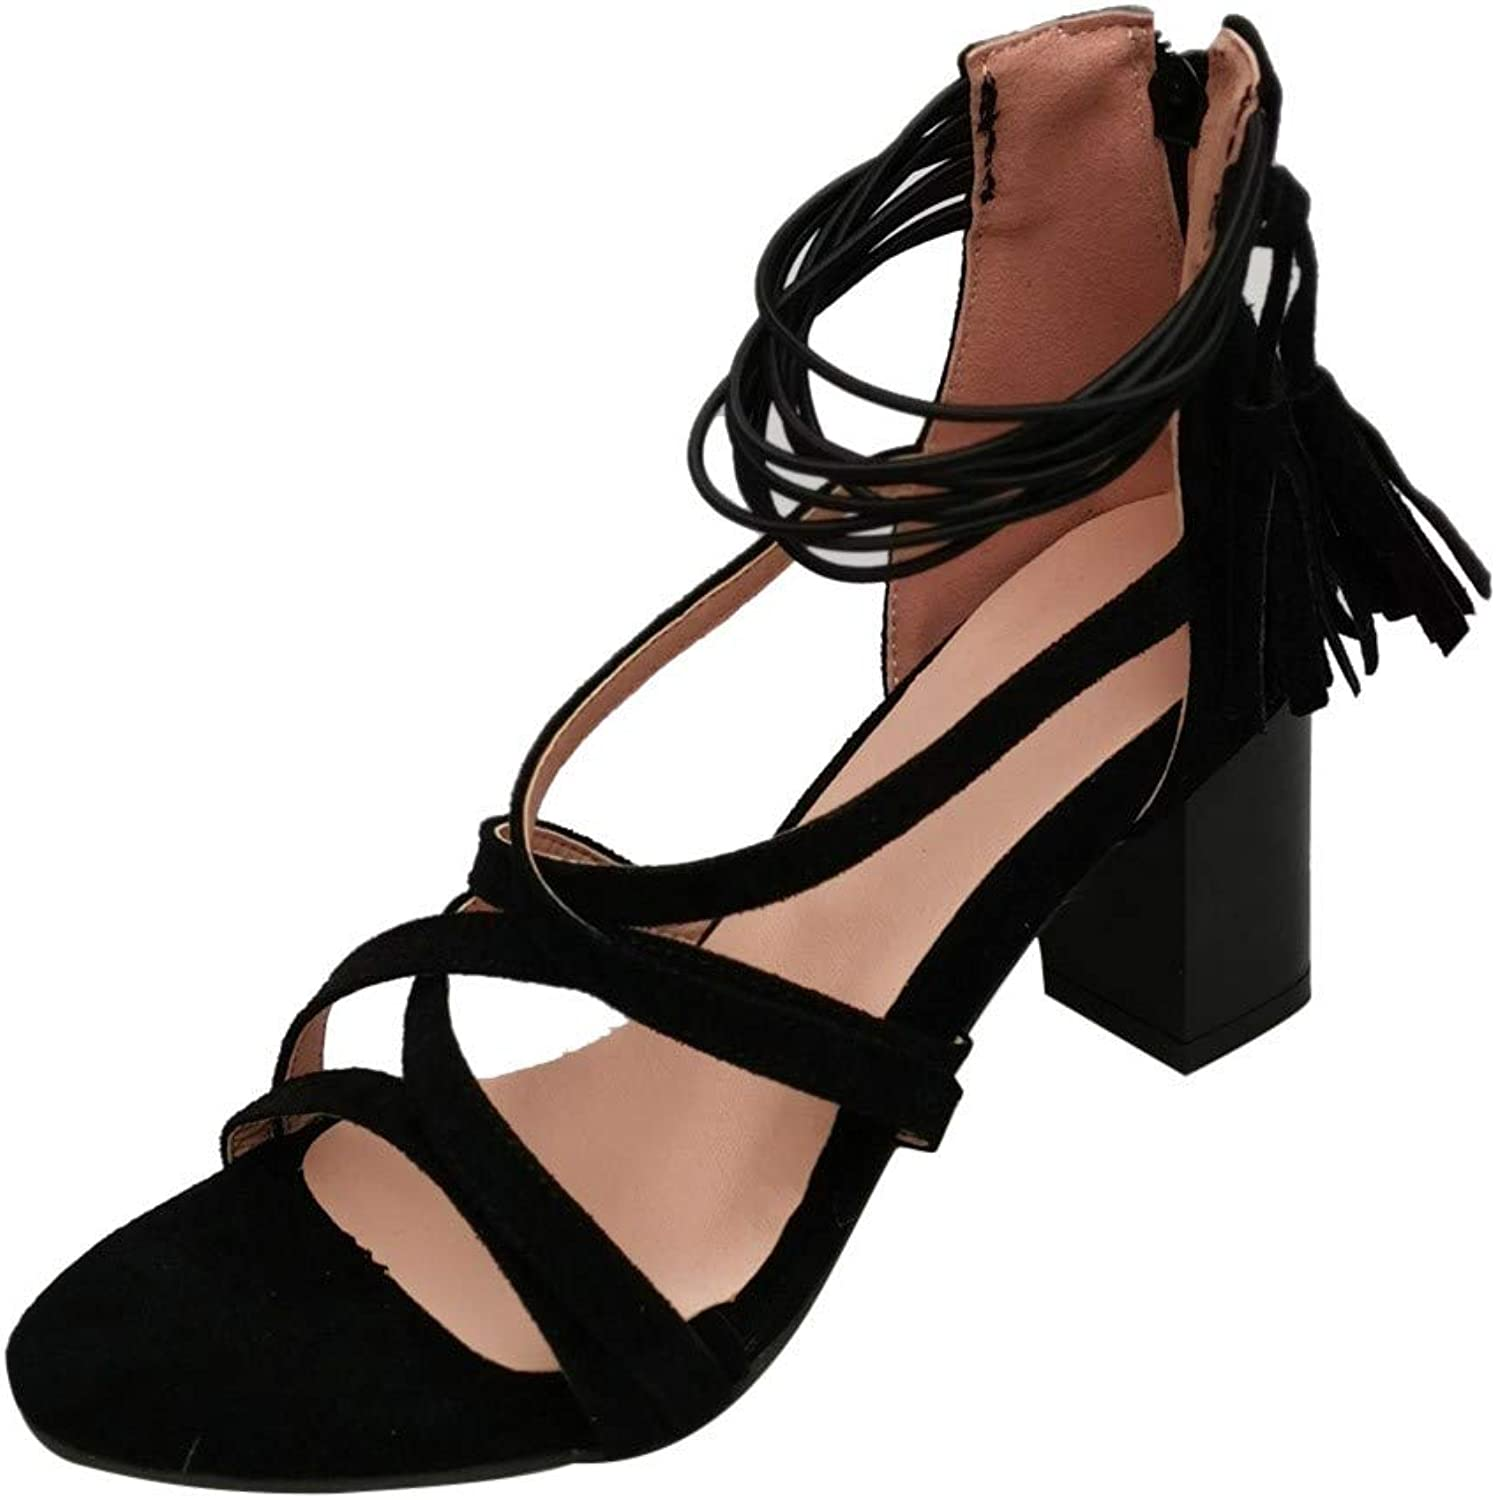 BESSKY Women Fashion Thick Heel Cross Strappy Tassel High Heels shoes Lace-Up Sandals